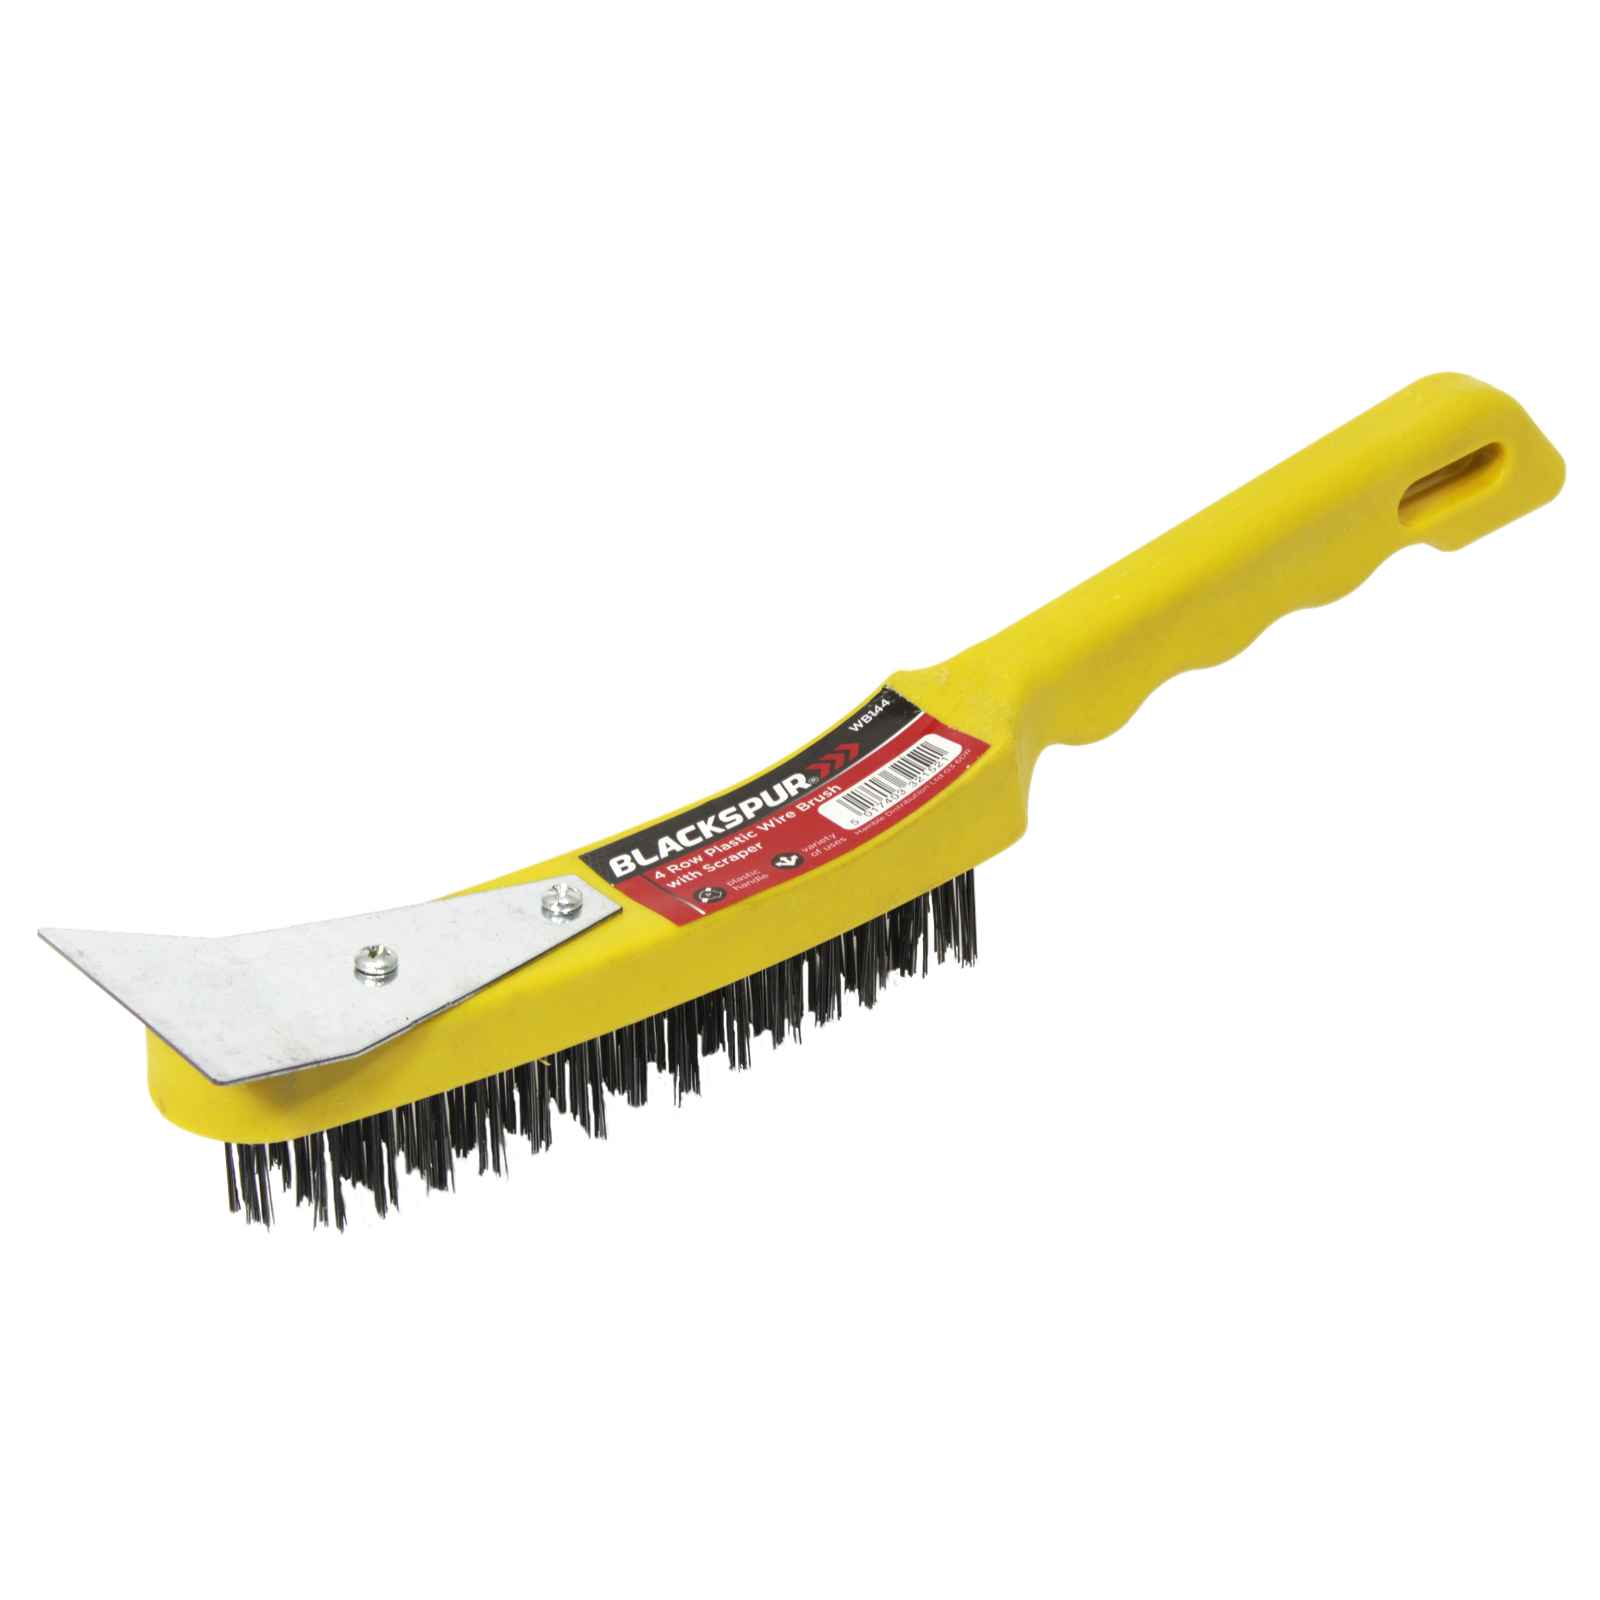 BLACKSPUR 4 ROW WIRE BRUSH+SCRAPER